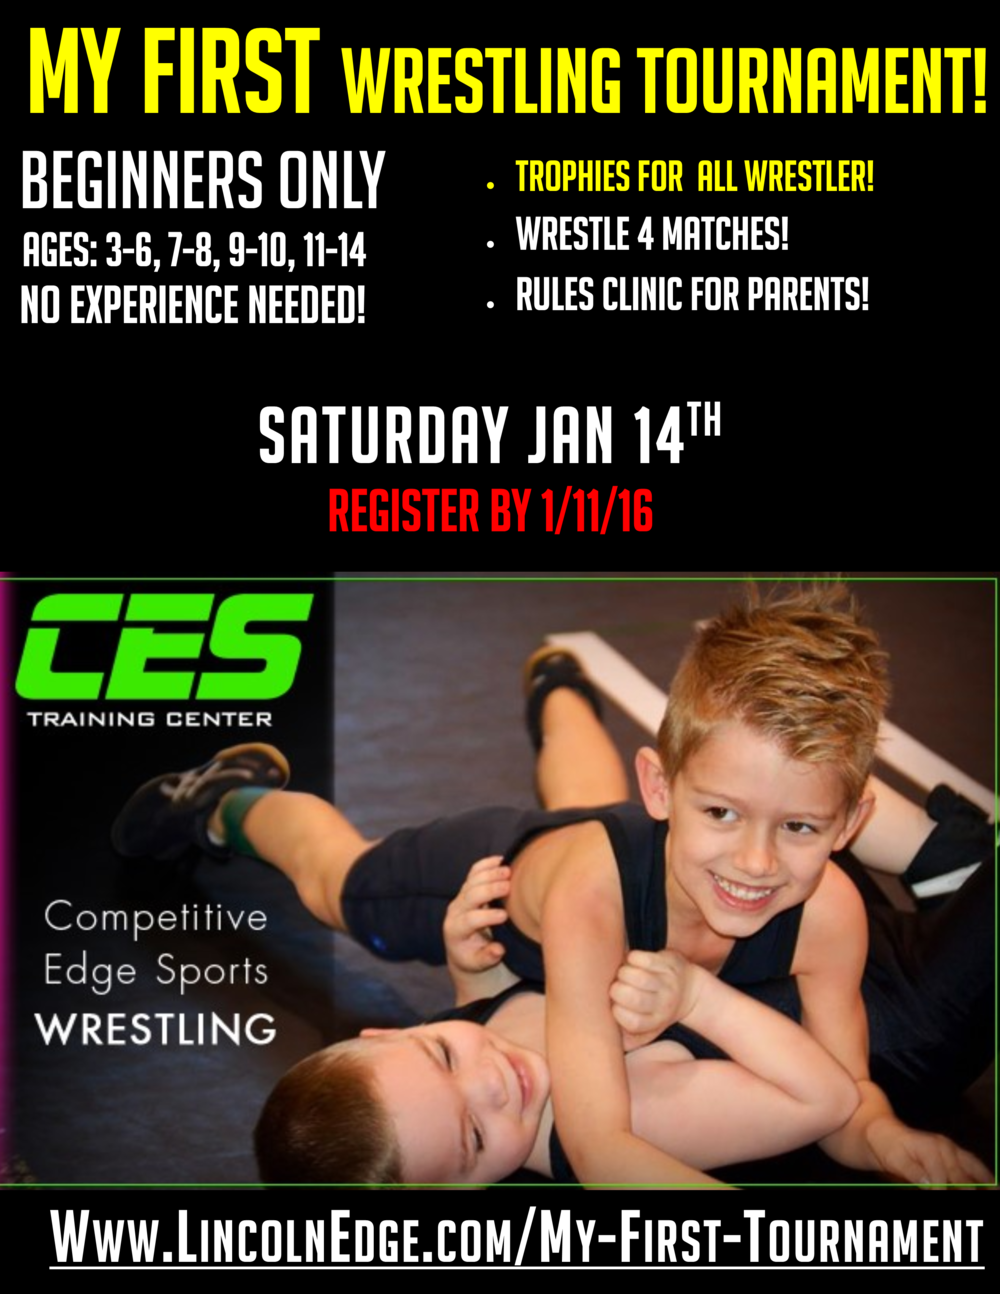 Final - 2017 - My First Wreslting Tournament! Poster 11 x 17.png